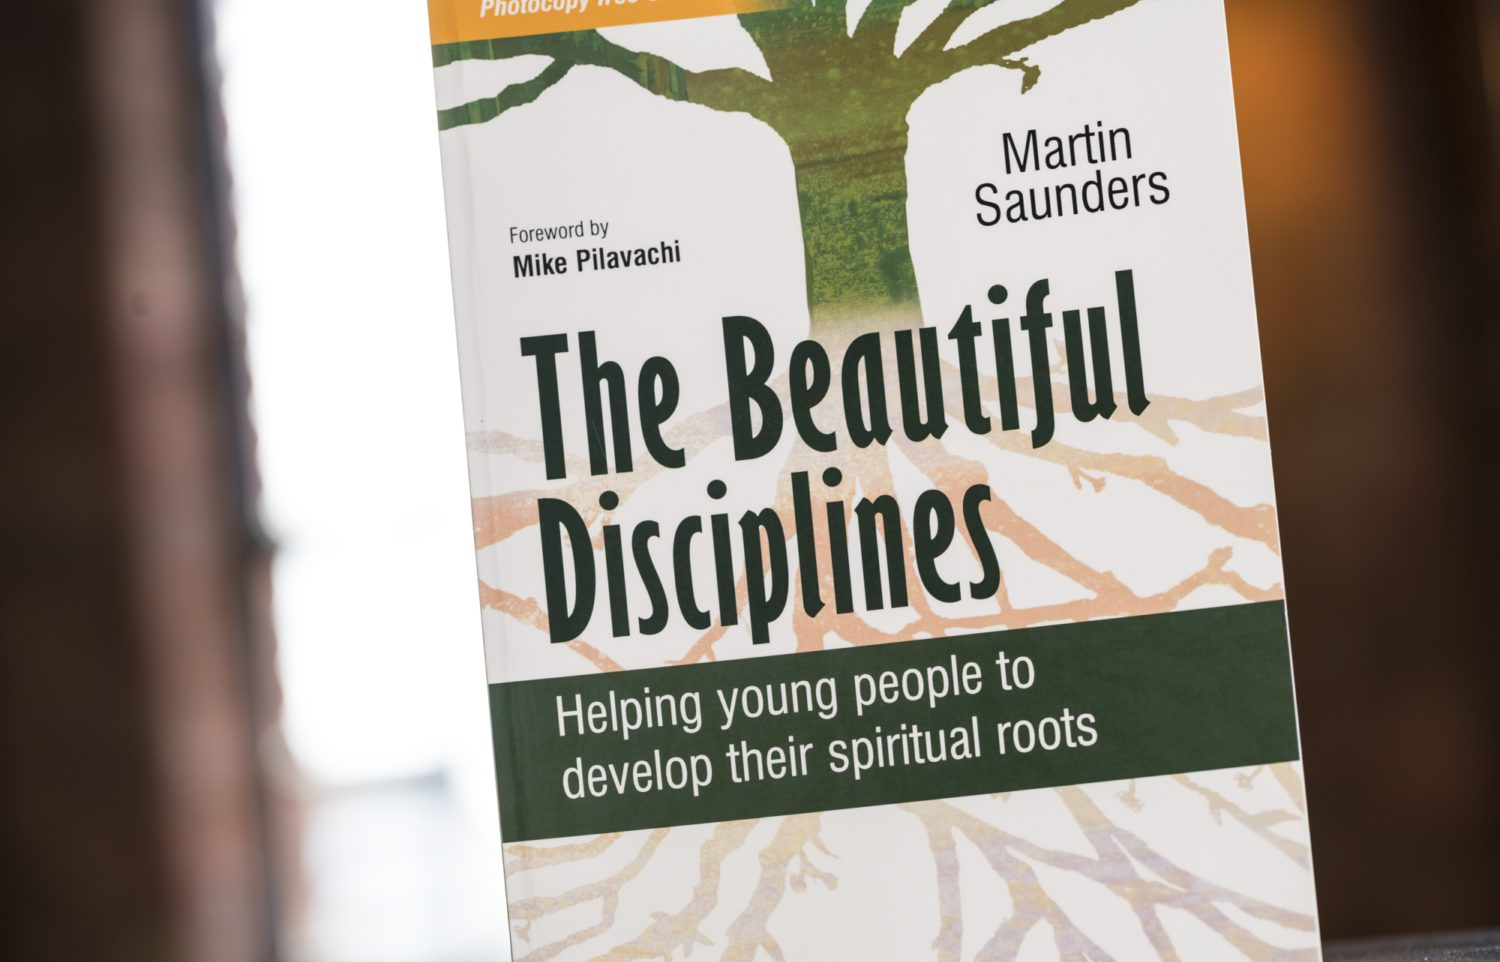 The Beautiful Disciplines, by Martin Saunders